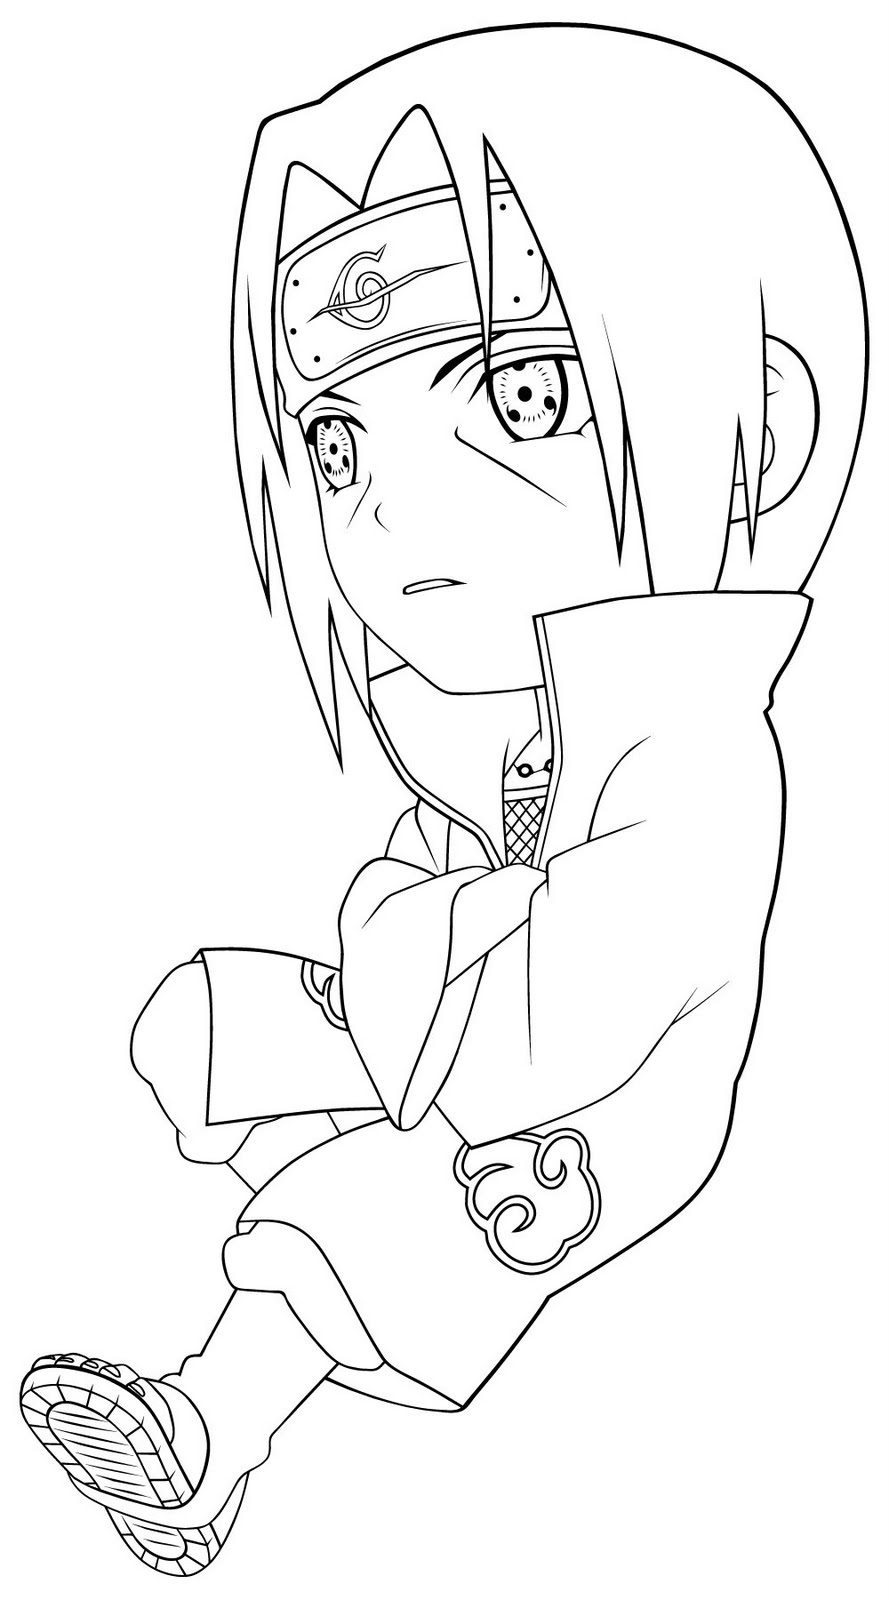 coloring pictures naruto naruto coloring pages naruto coloring pictures 1 1